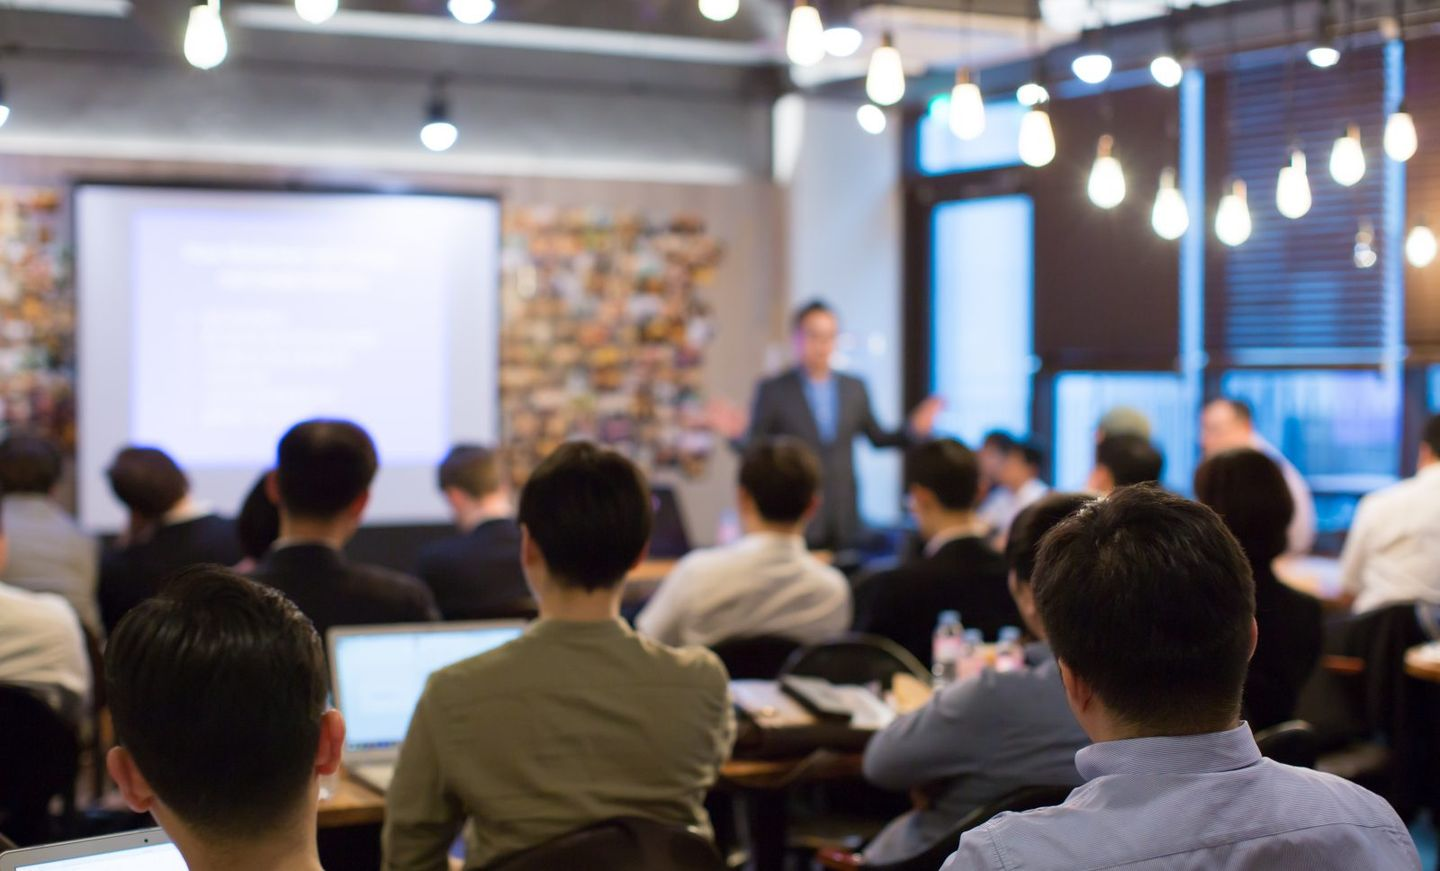 Business people meeting and working while business executive lead presenter speaks to group of successful technology entrepreneurs consultant advisor growth training lecture defocused blurred